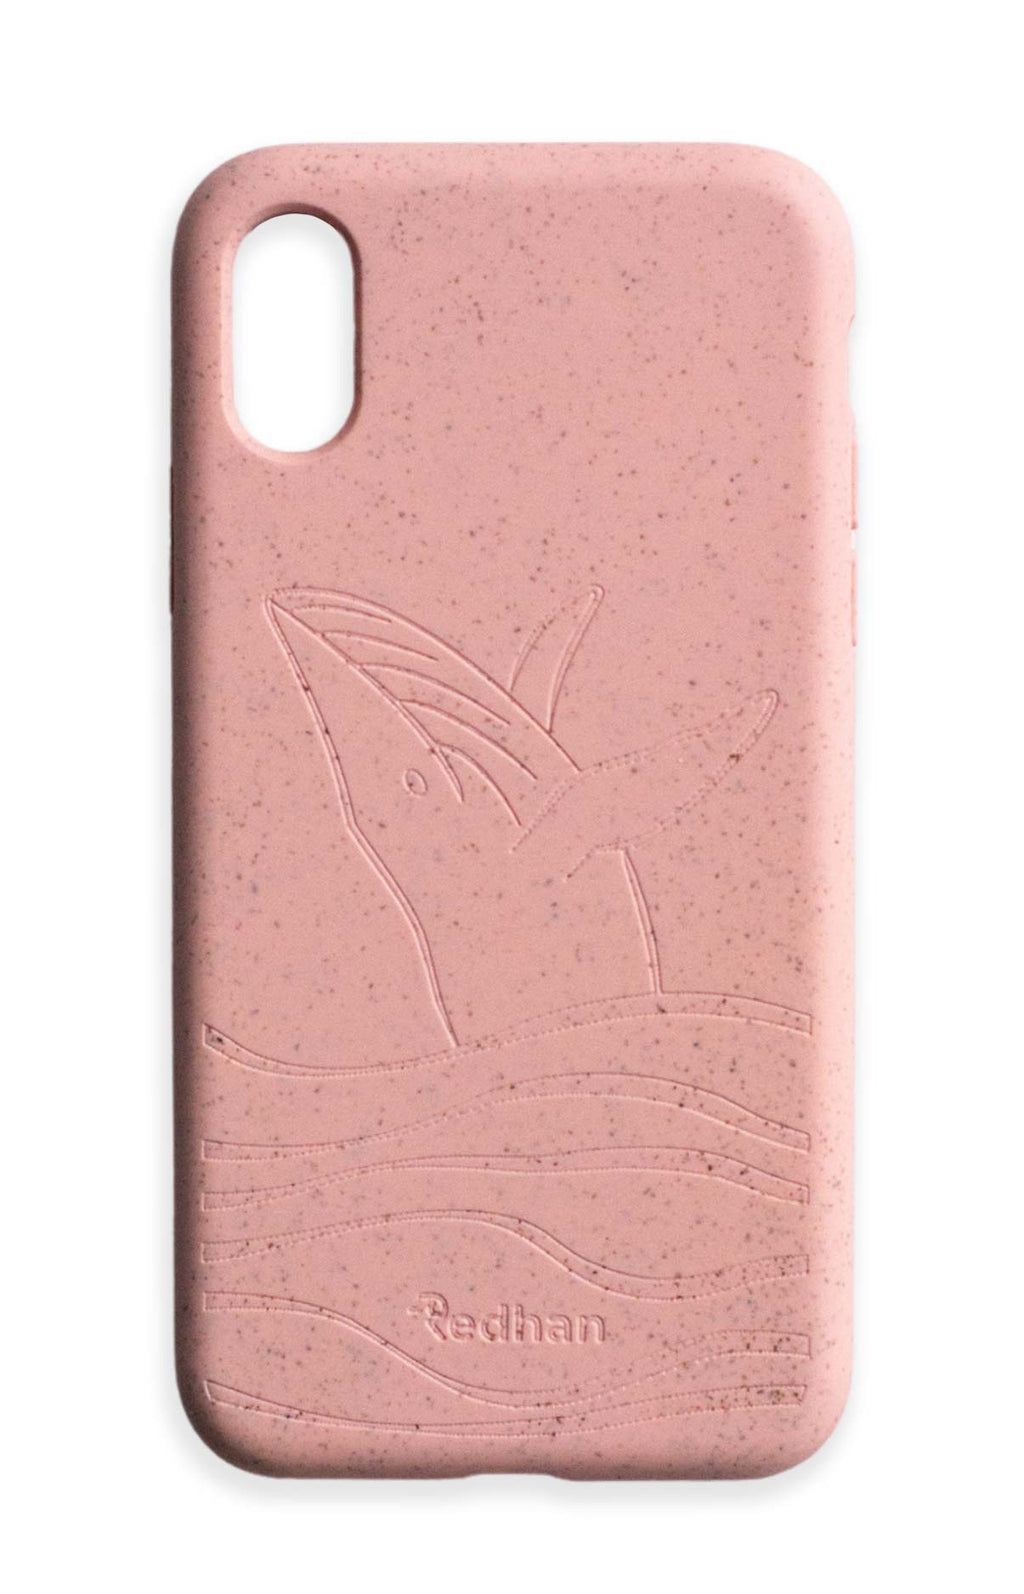 Eco Friendly iPhone XS Max Phone Case - Whale 2.0 in Blush Pink